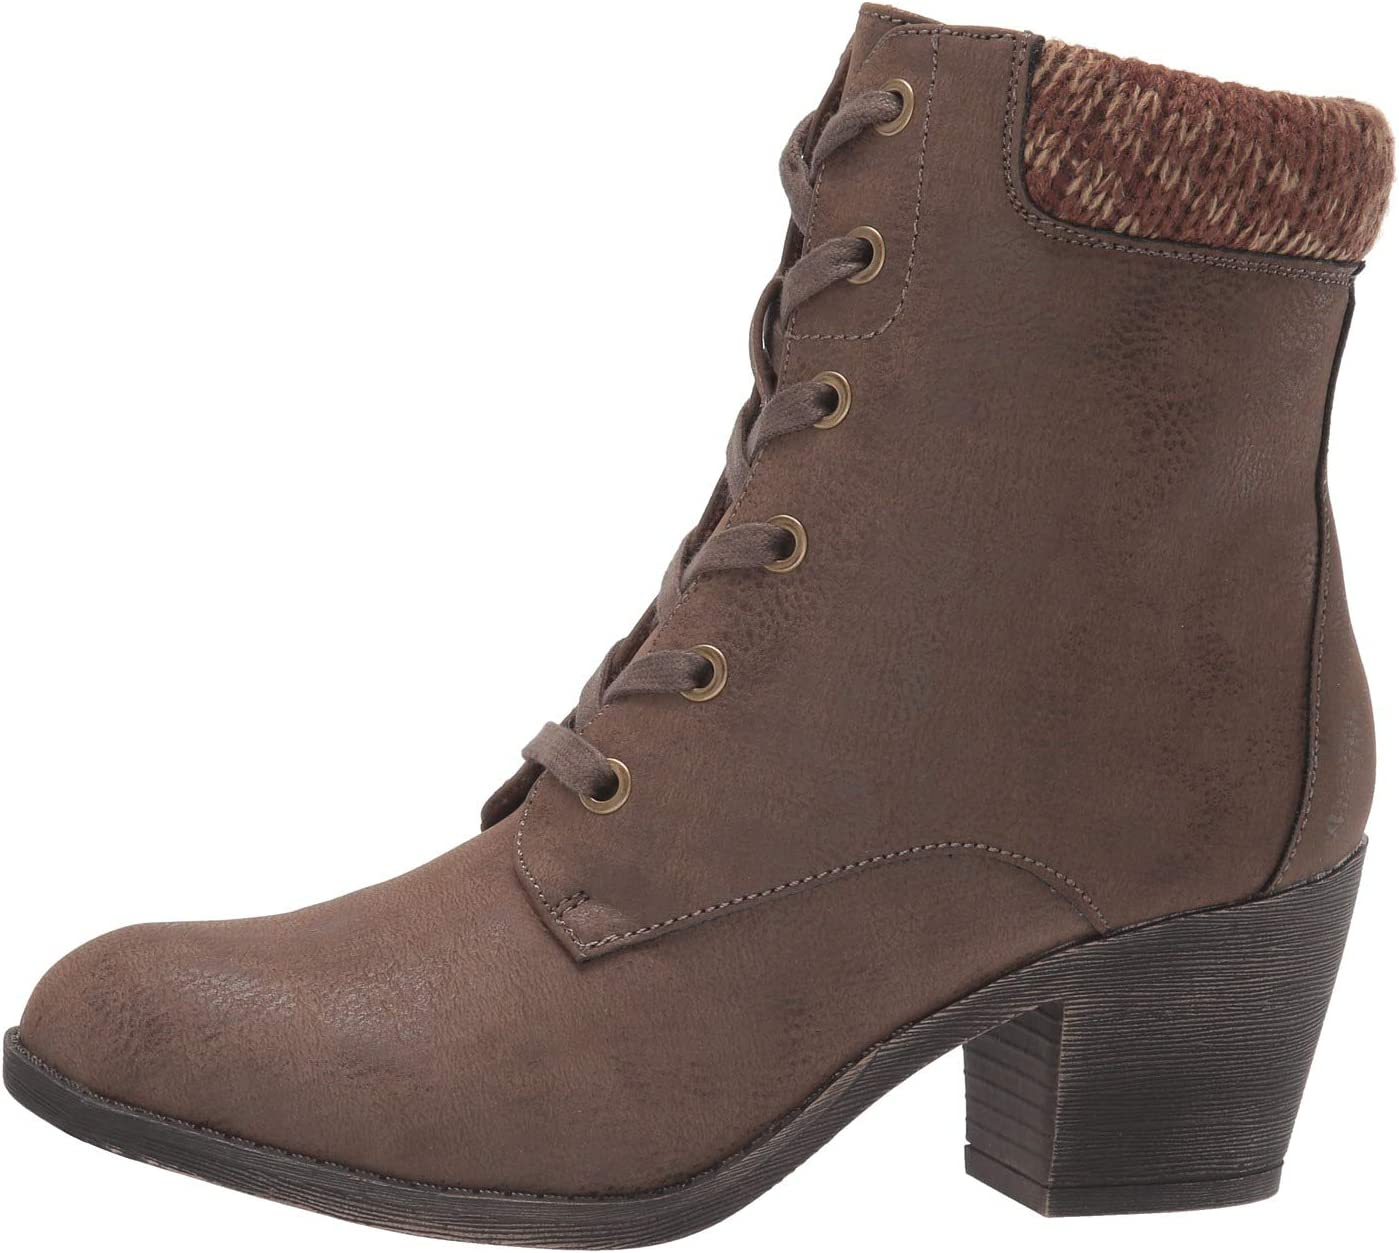 Rocket Dog Sherry | Women's shoes | 2020 Newest